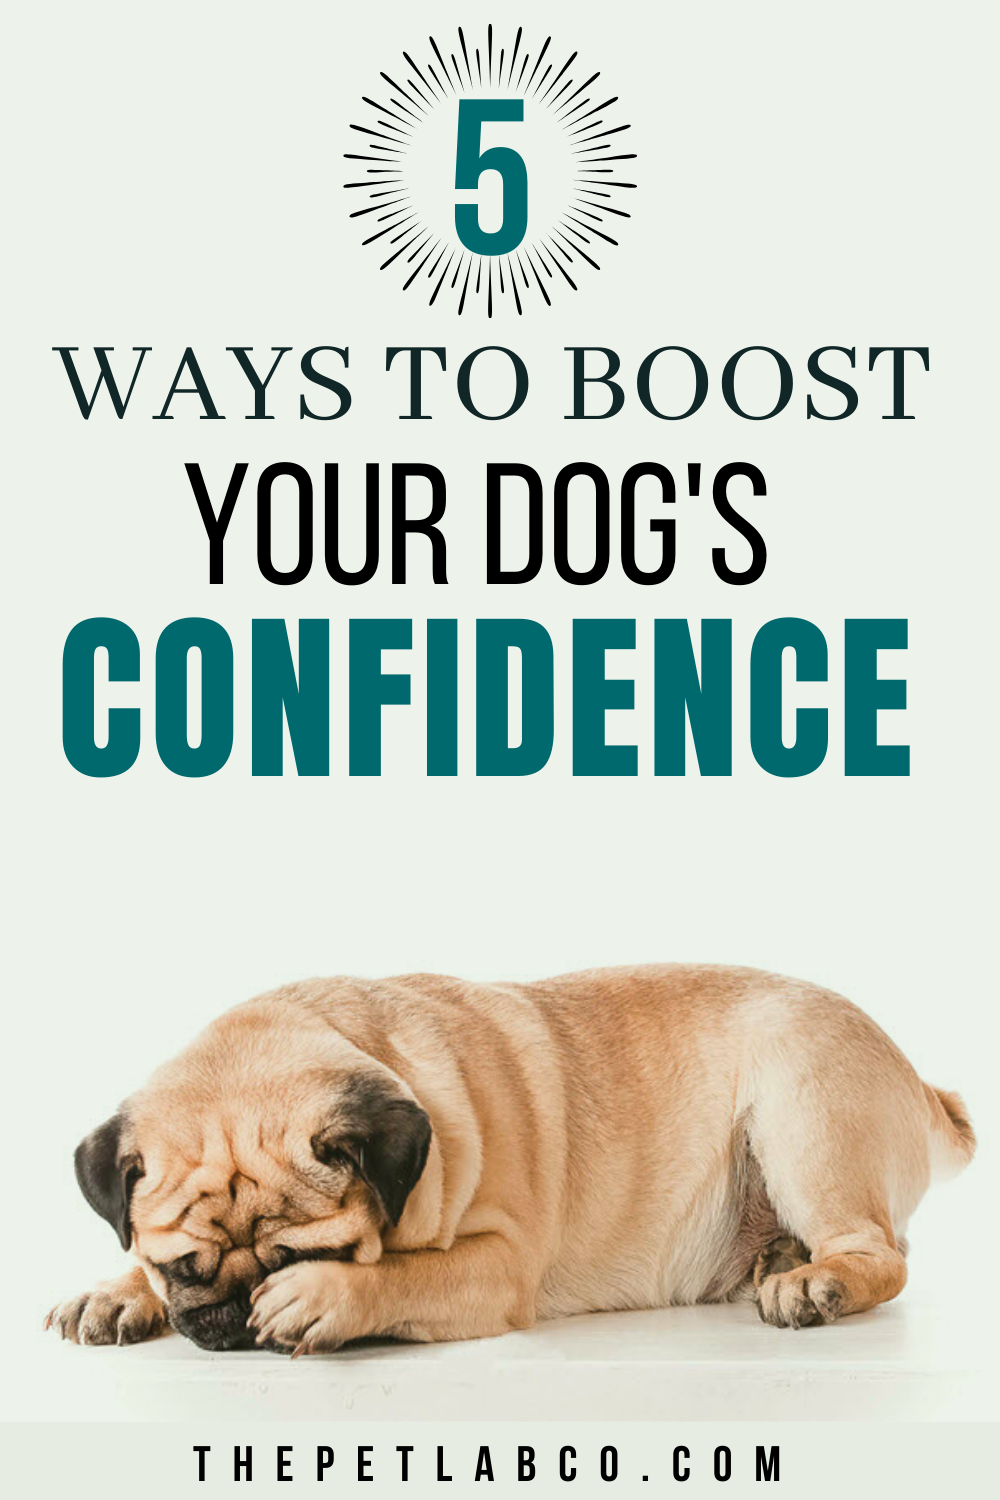 Nervous Dog Here Are 5 Ways To Build Confidence In Your Pet Dogs Pet Sitters International Cute Dog Collars